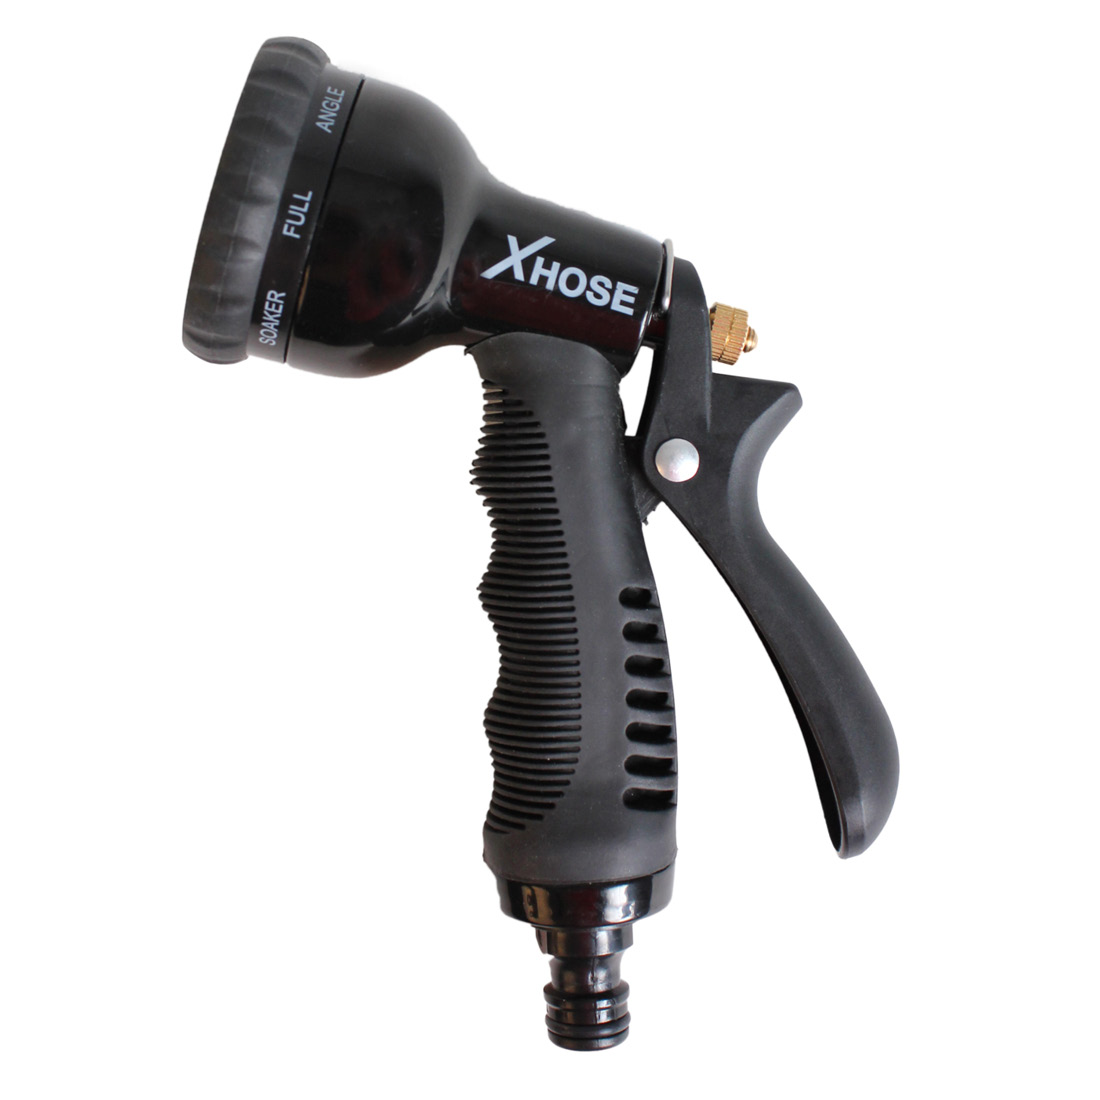 An image of XHose Pro 8 Speed Spray Nozzle